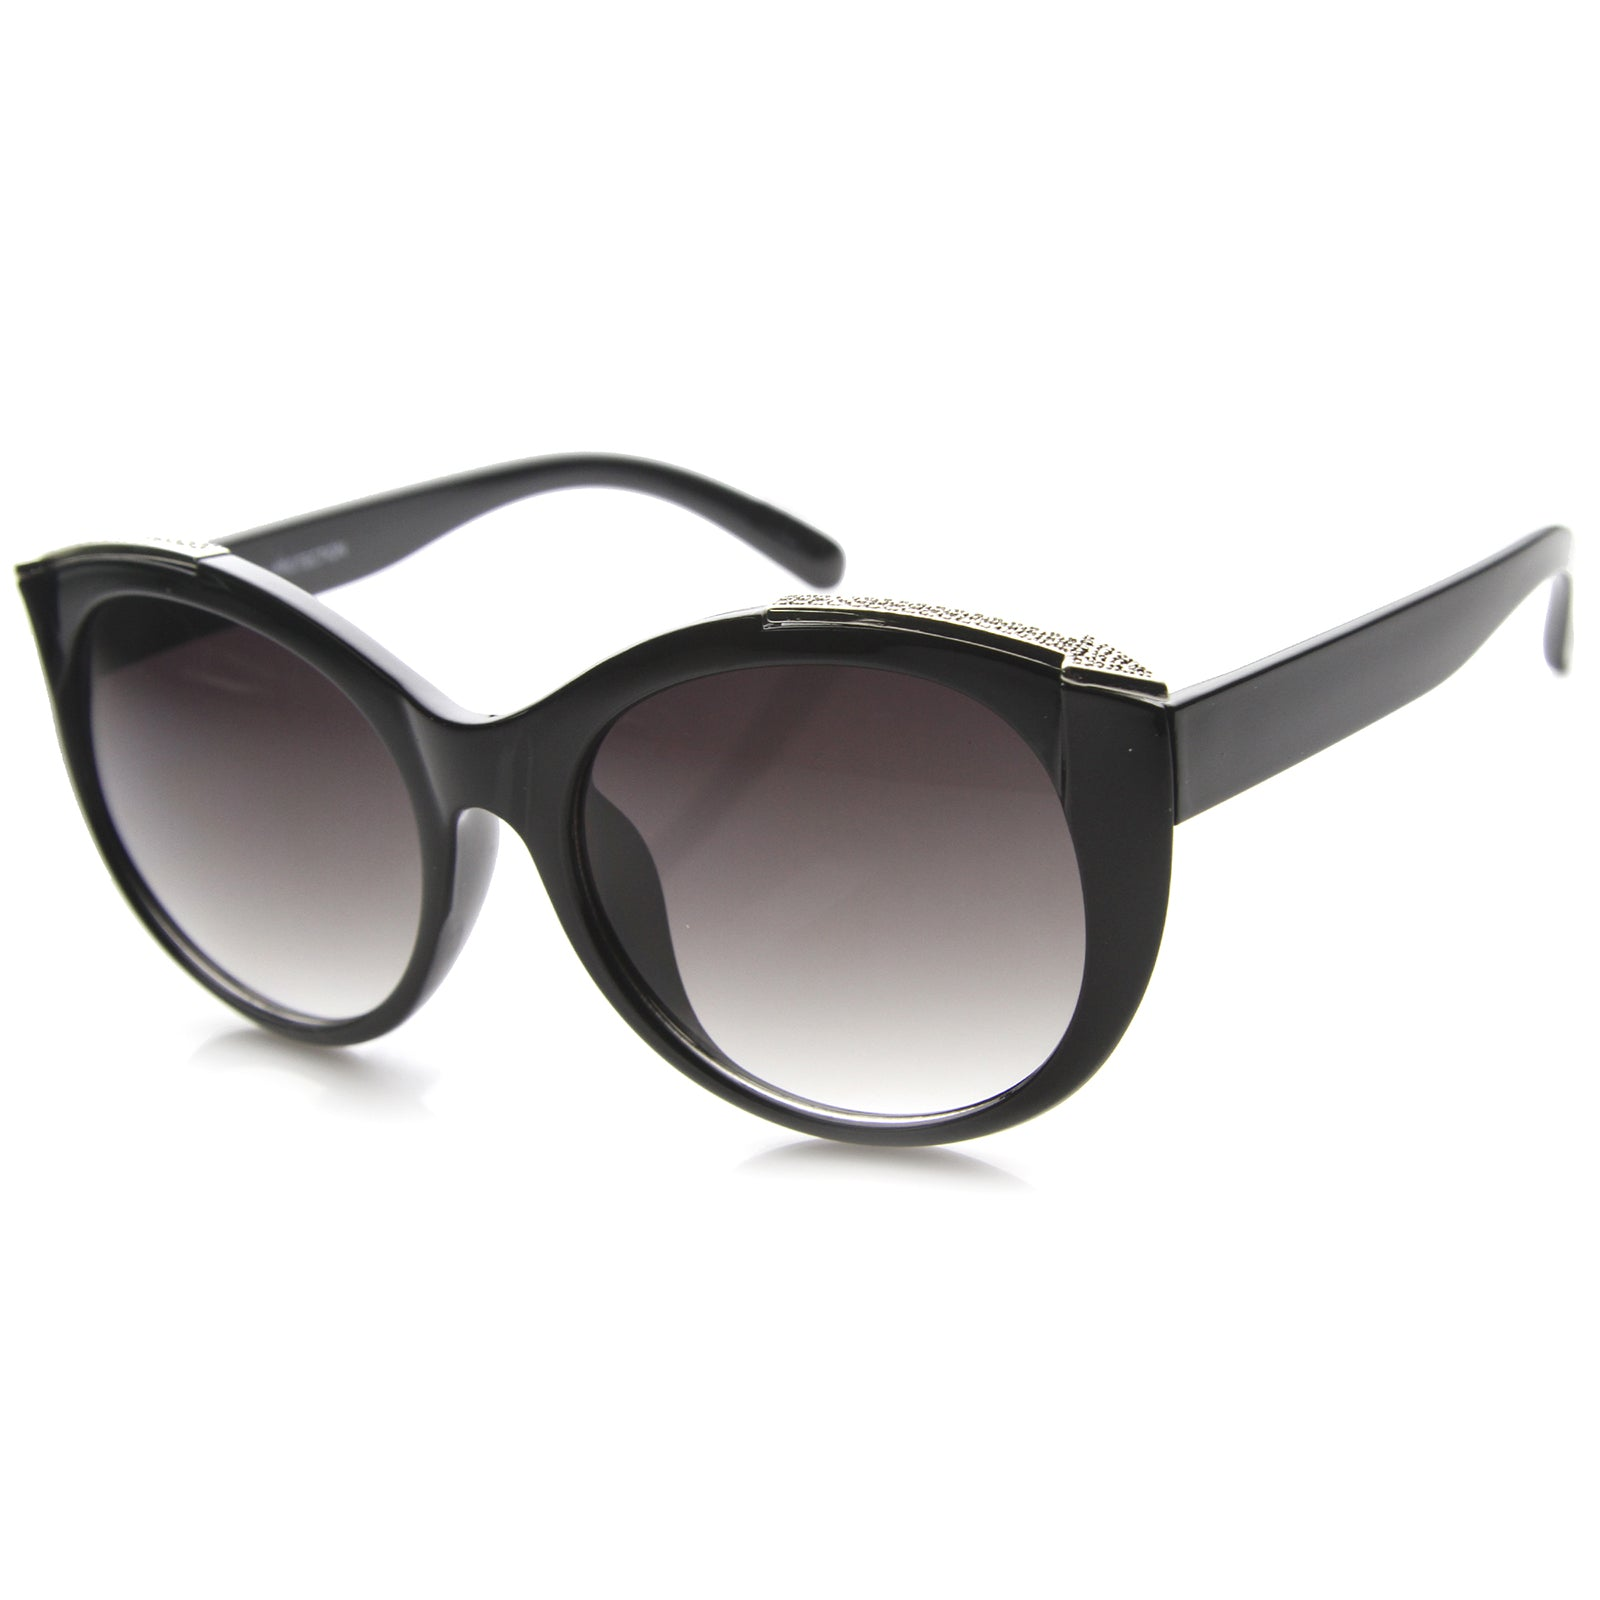 Womens Cat Eye Sunglasses With UV400 Protected Gradient Lens - sunglass.la - 6